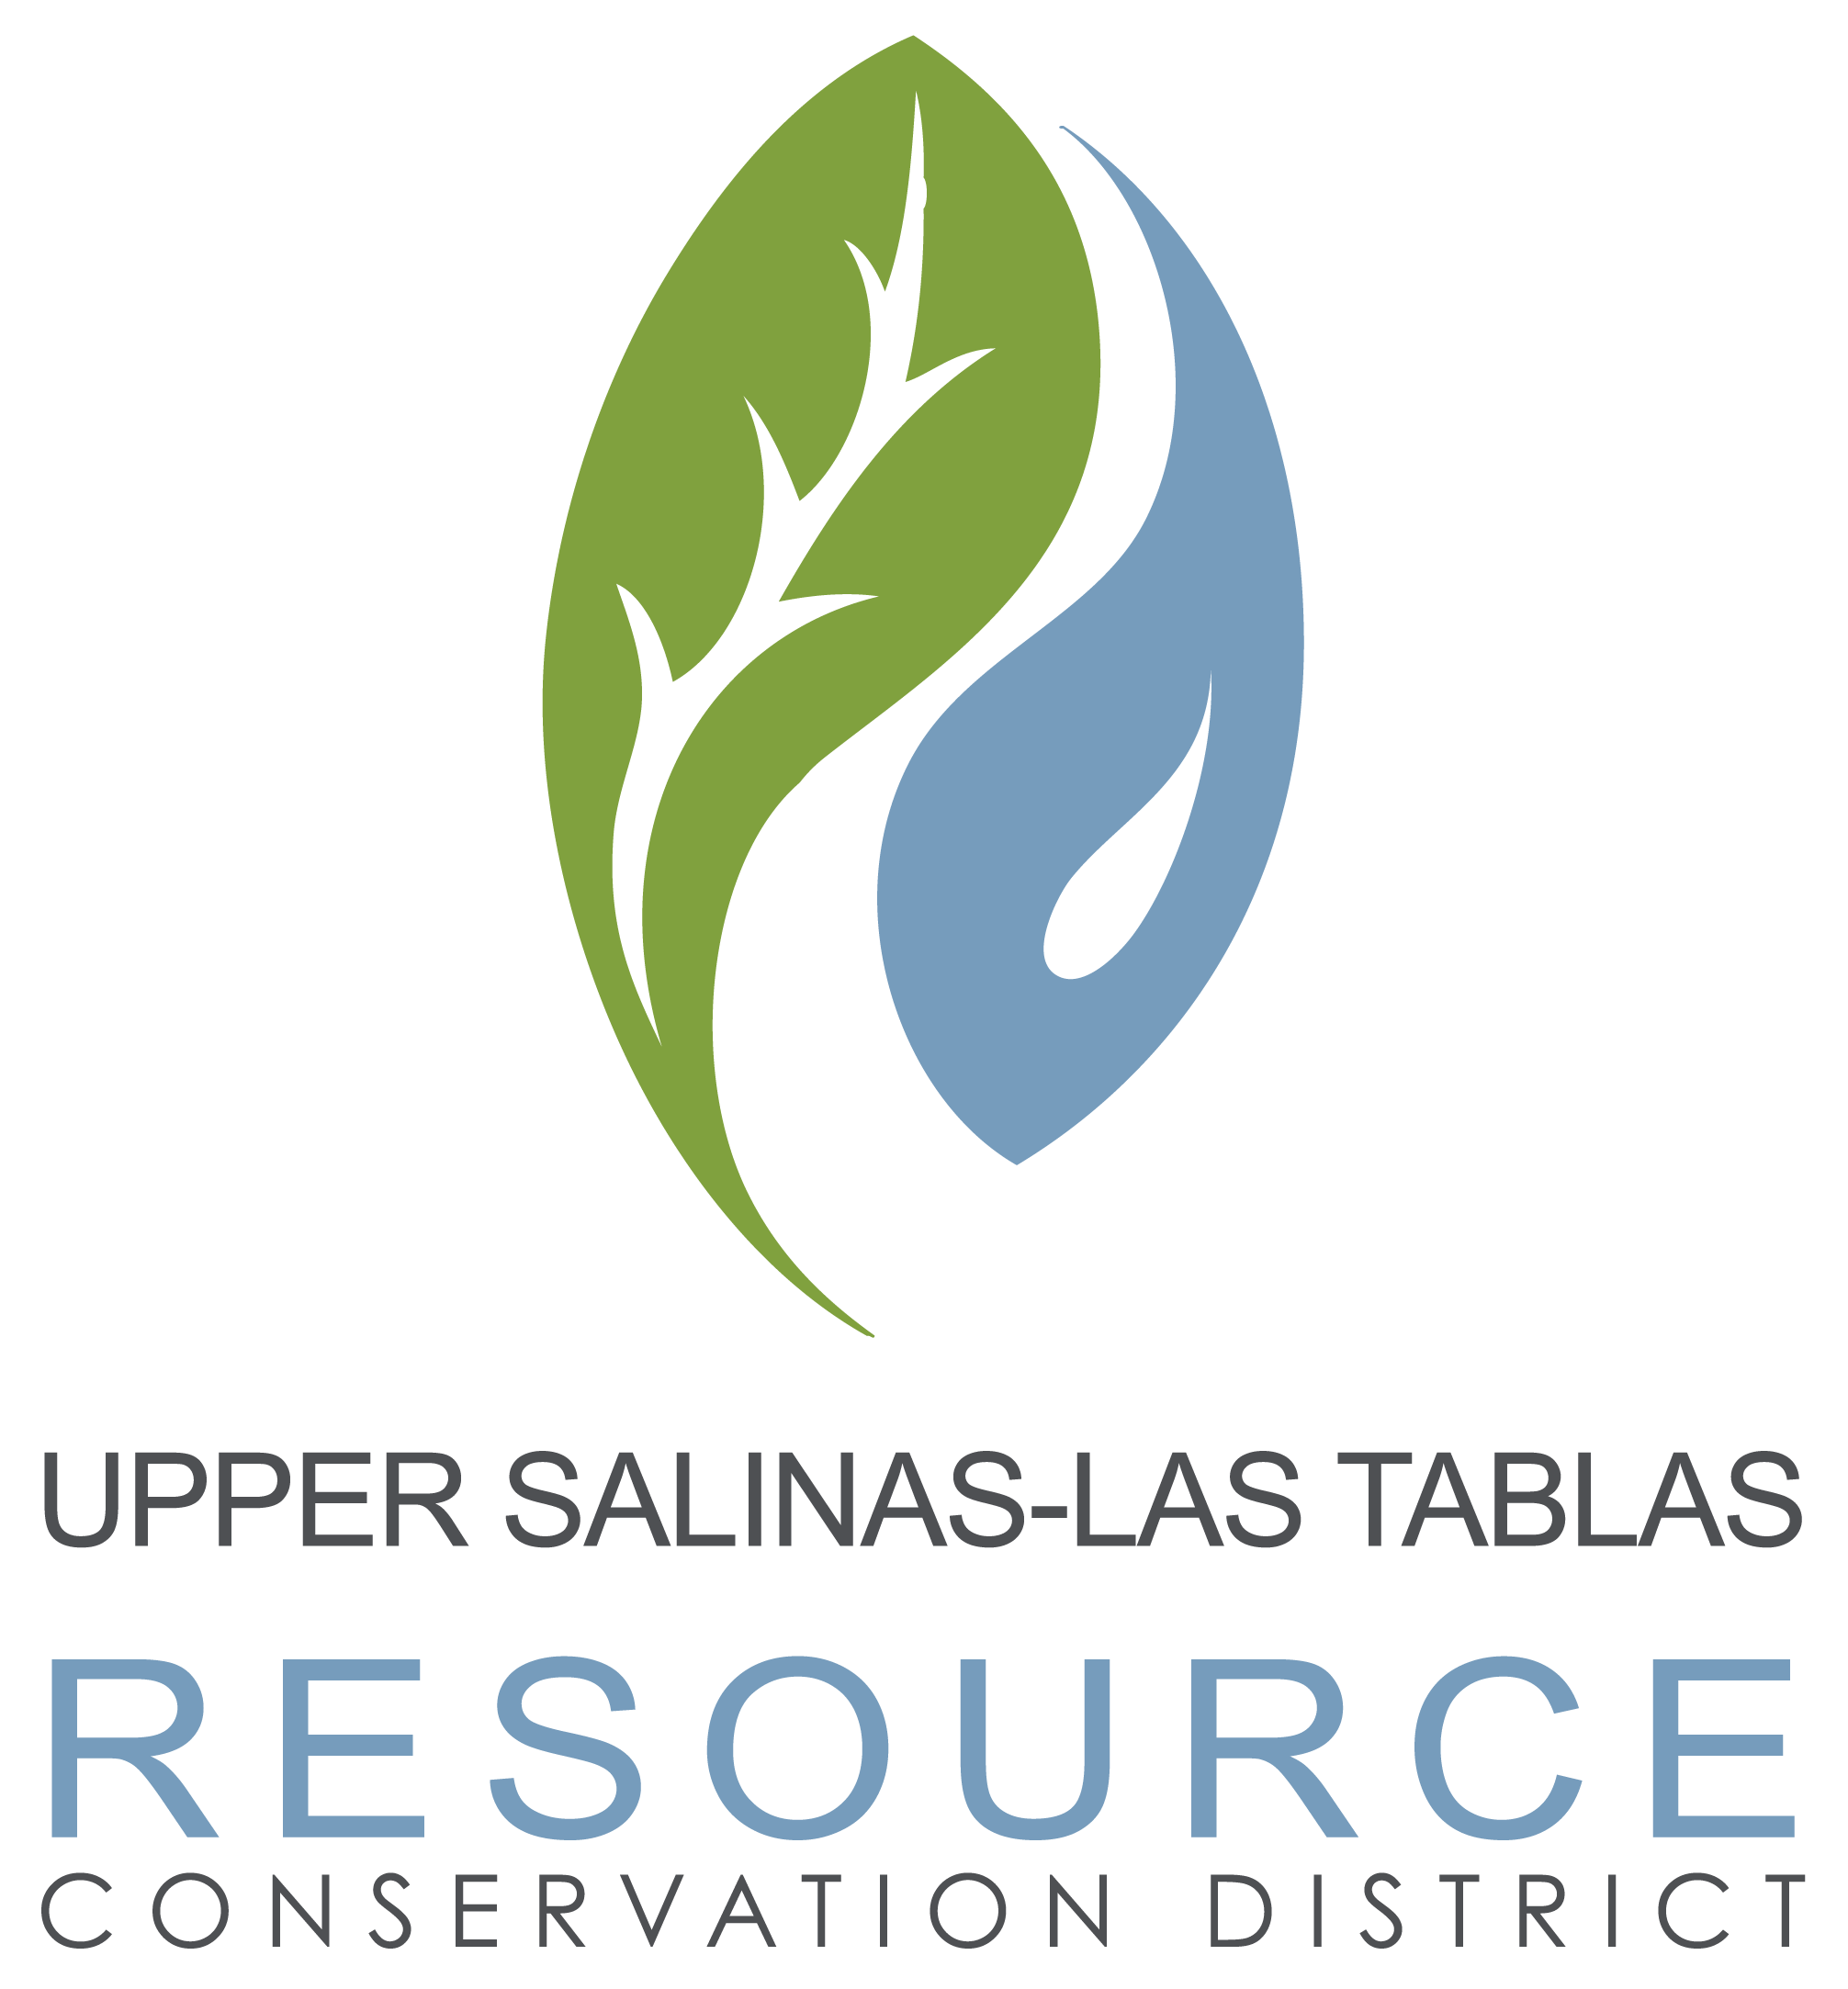 Upper Salinas-Las Tablas Resource Conservation District